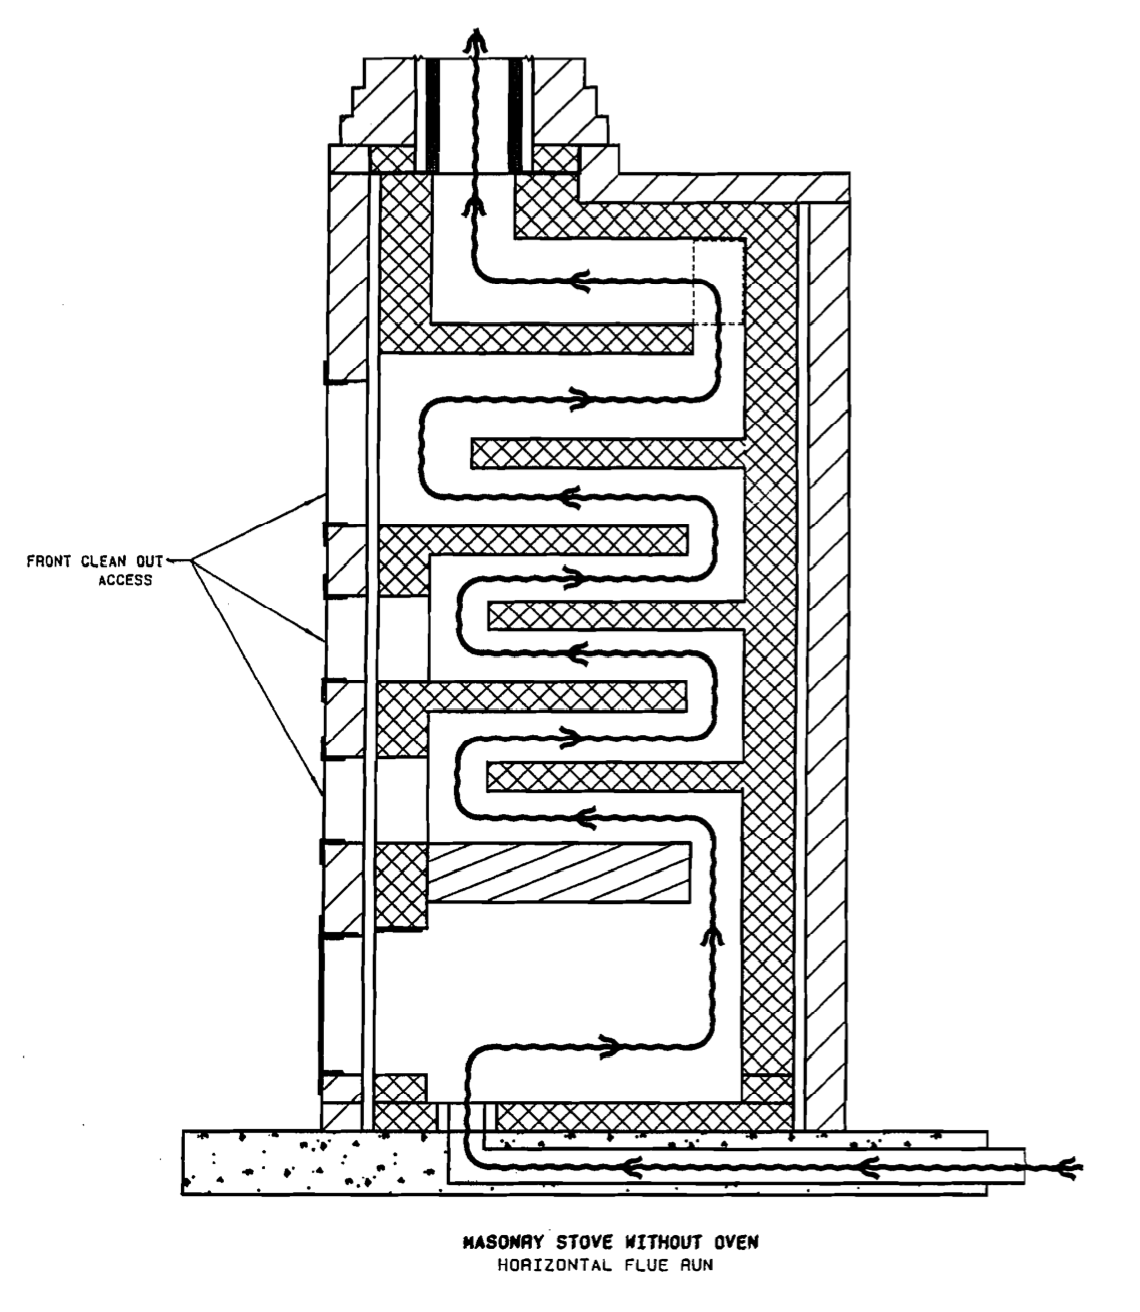 Hot Air Oven Diagram Crete Permaculture Masonry Heaters 1